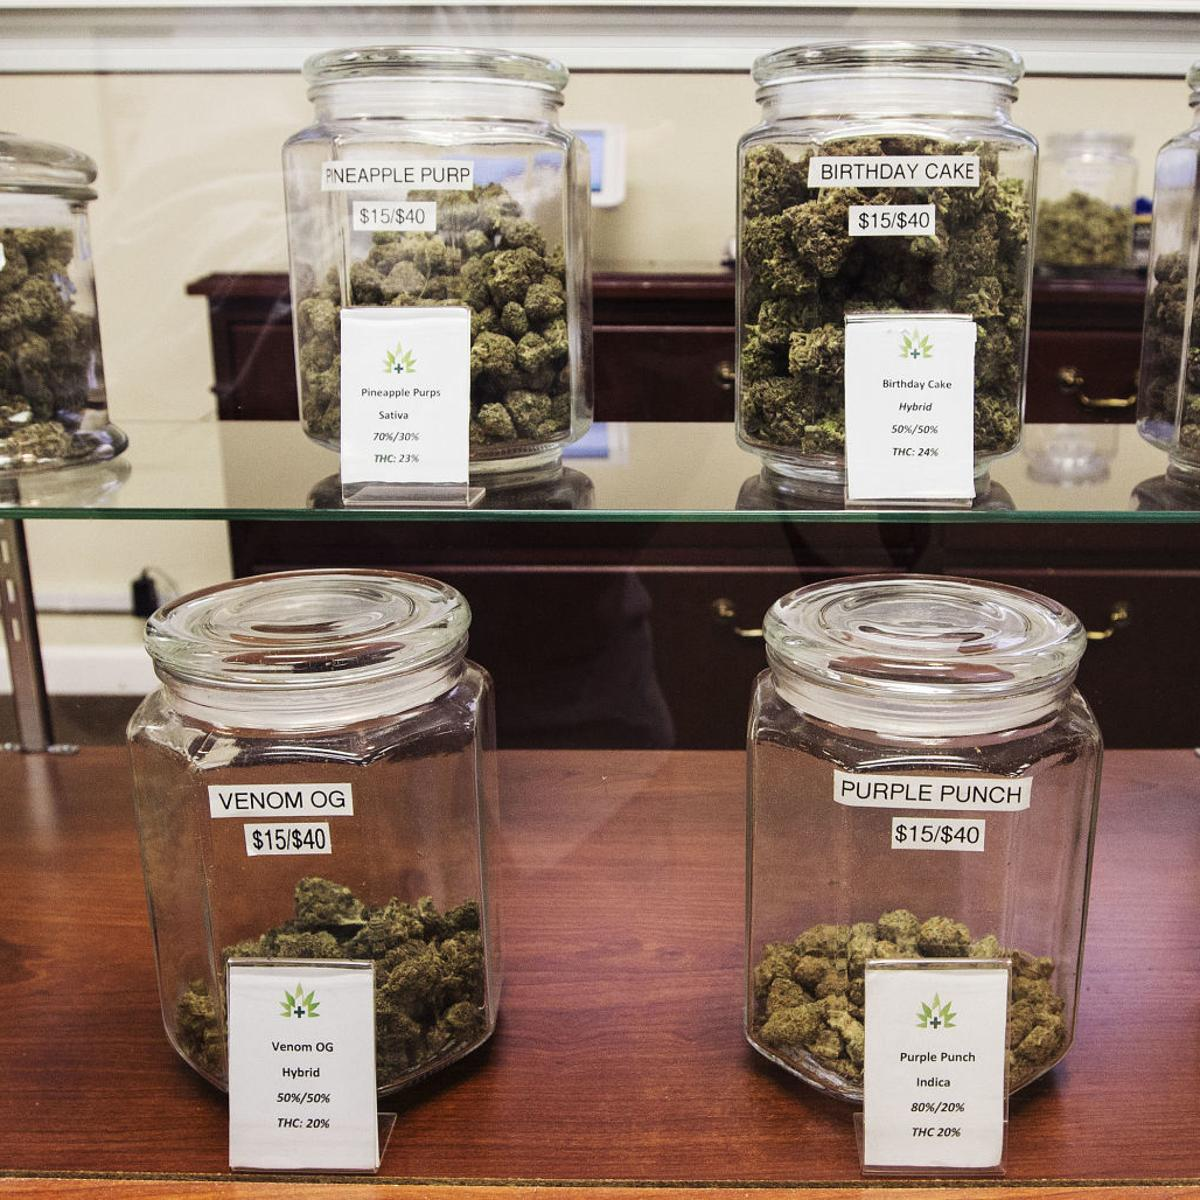 Legal dispensaries struggle to compete against illegal pot shops as